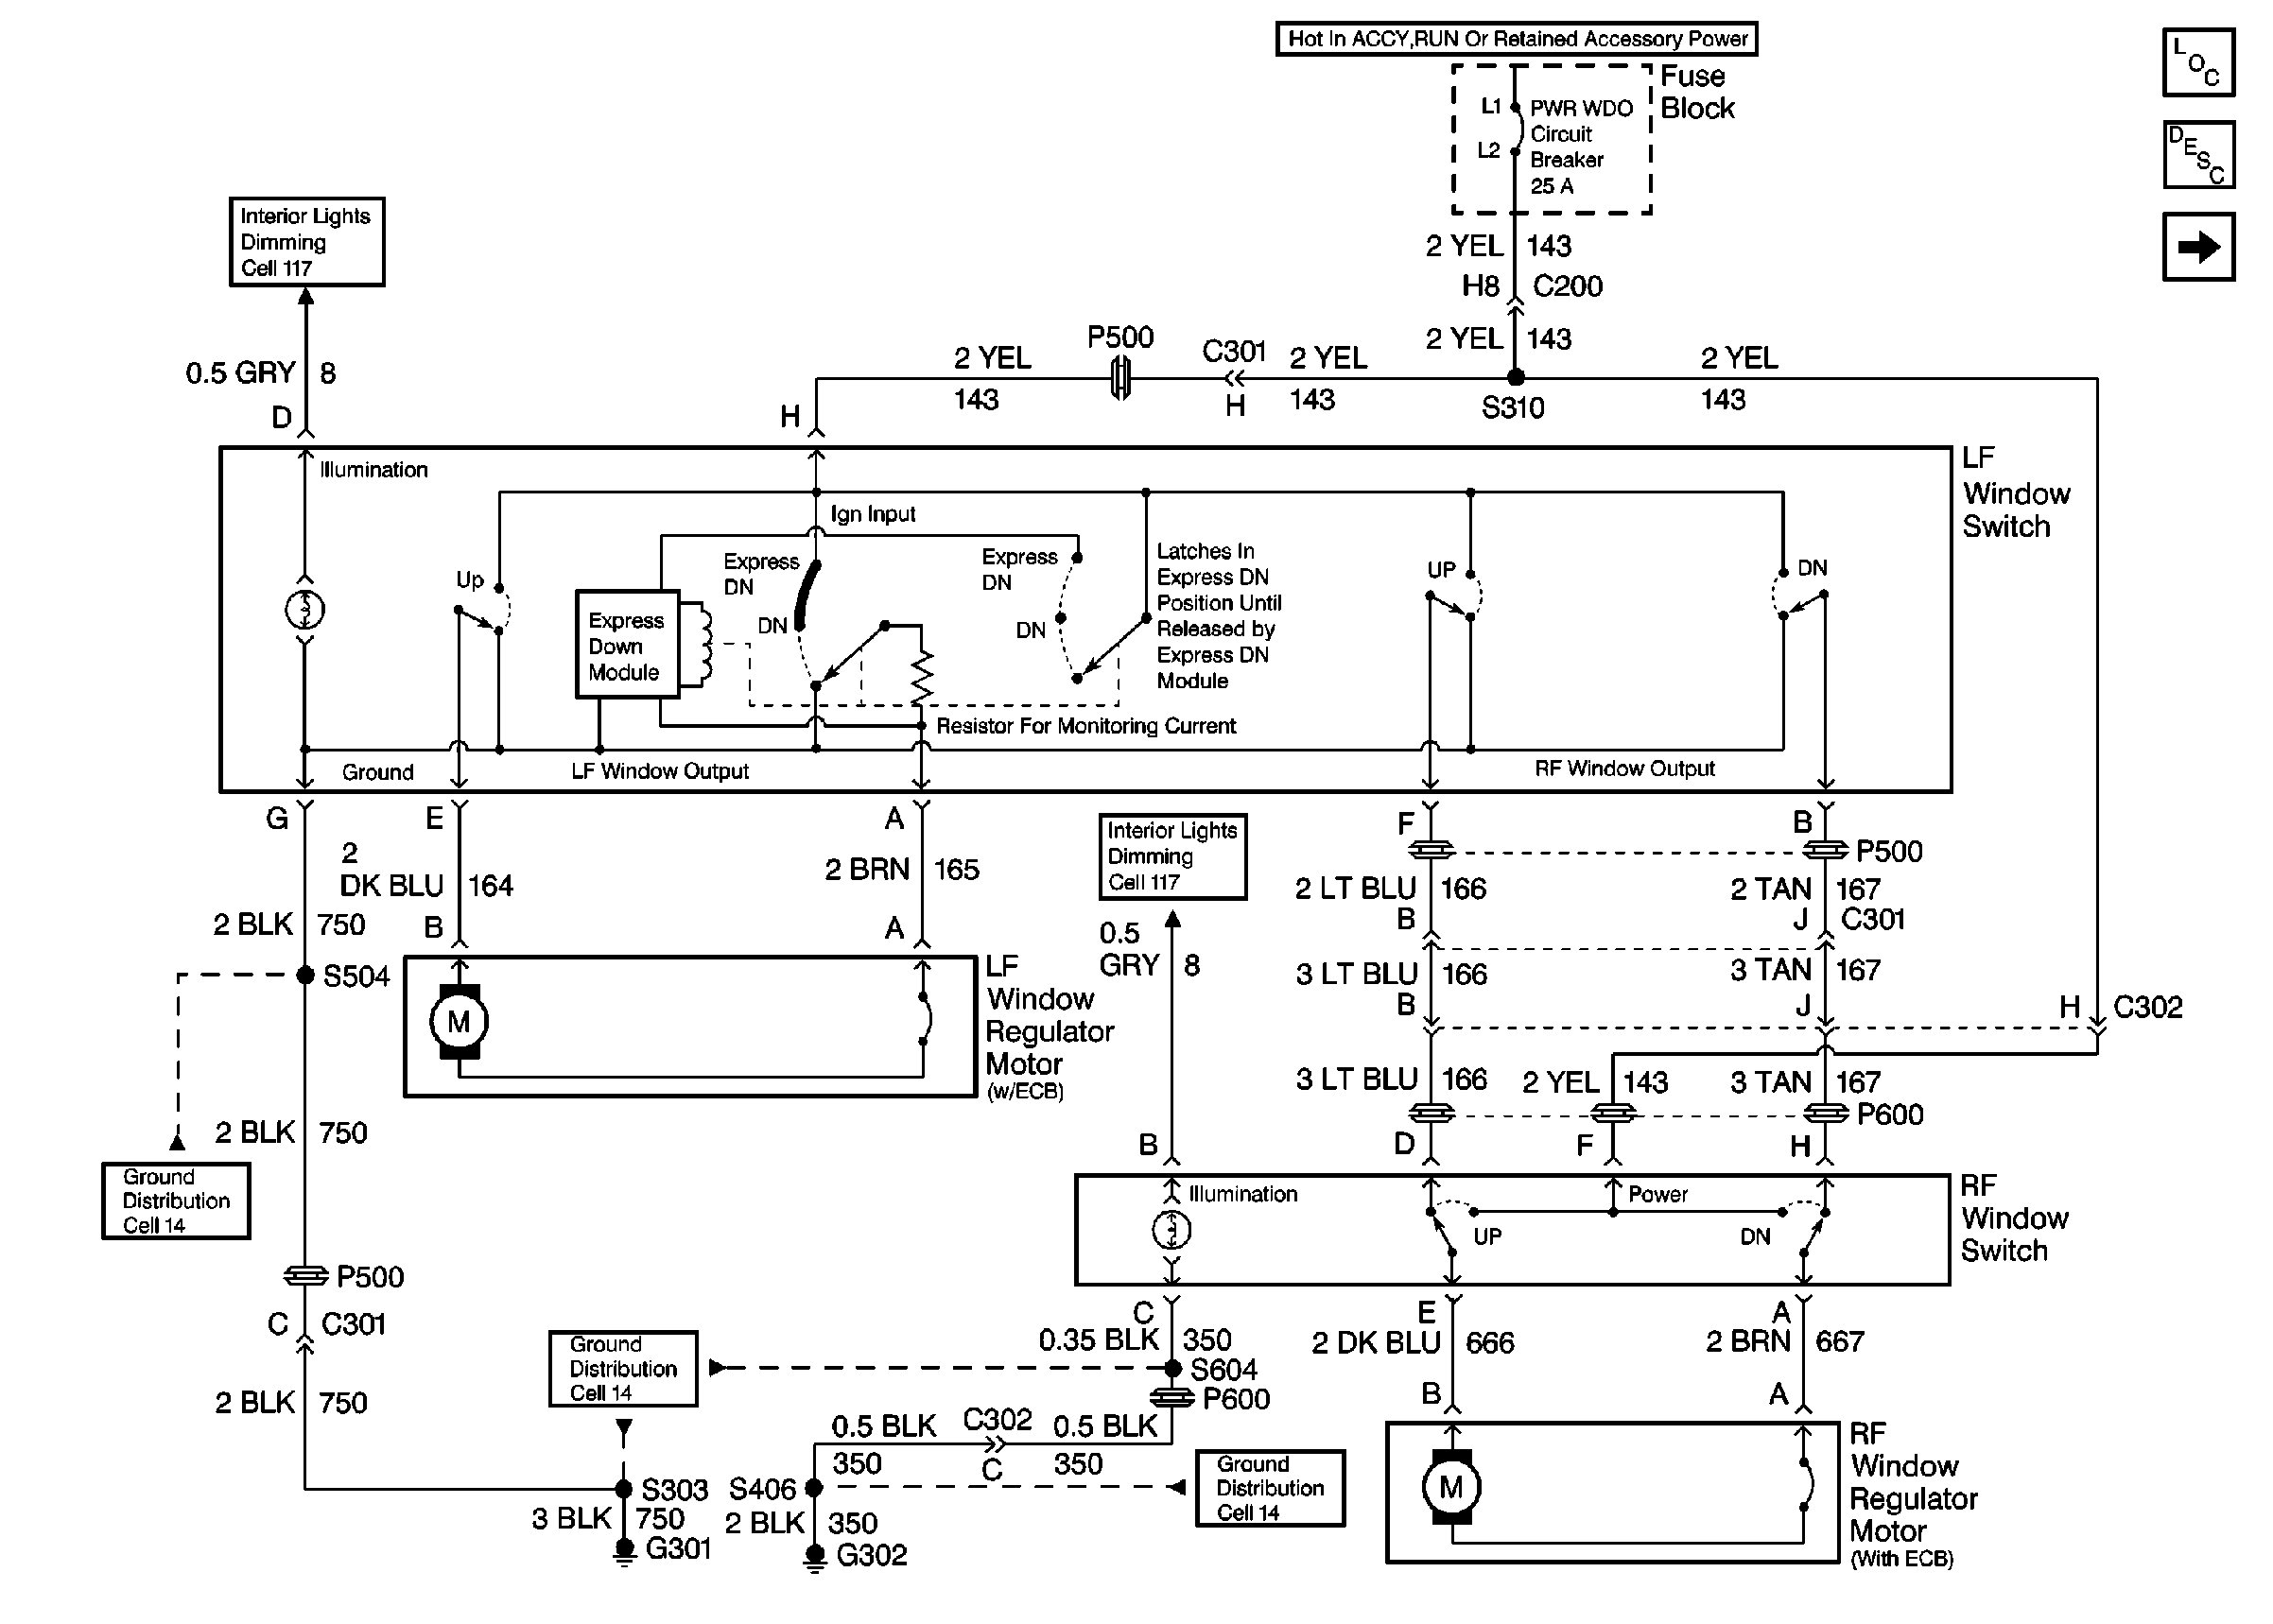 pontiac grand am wiring diagram on 2000 sunfire get free image about wiring diagram